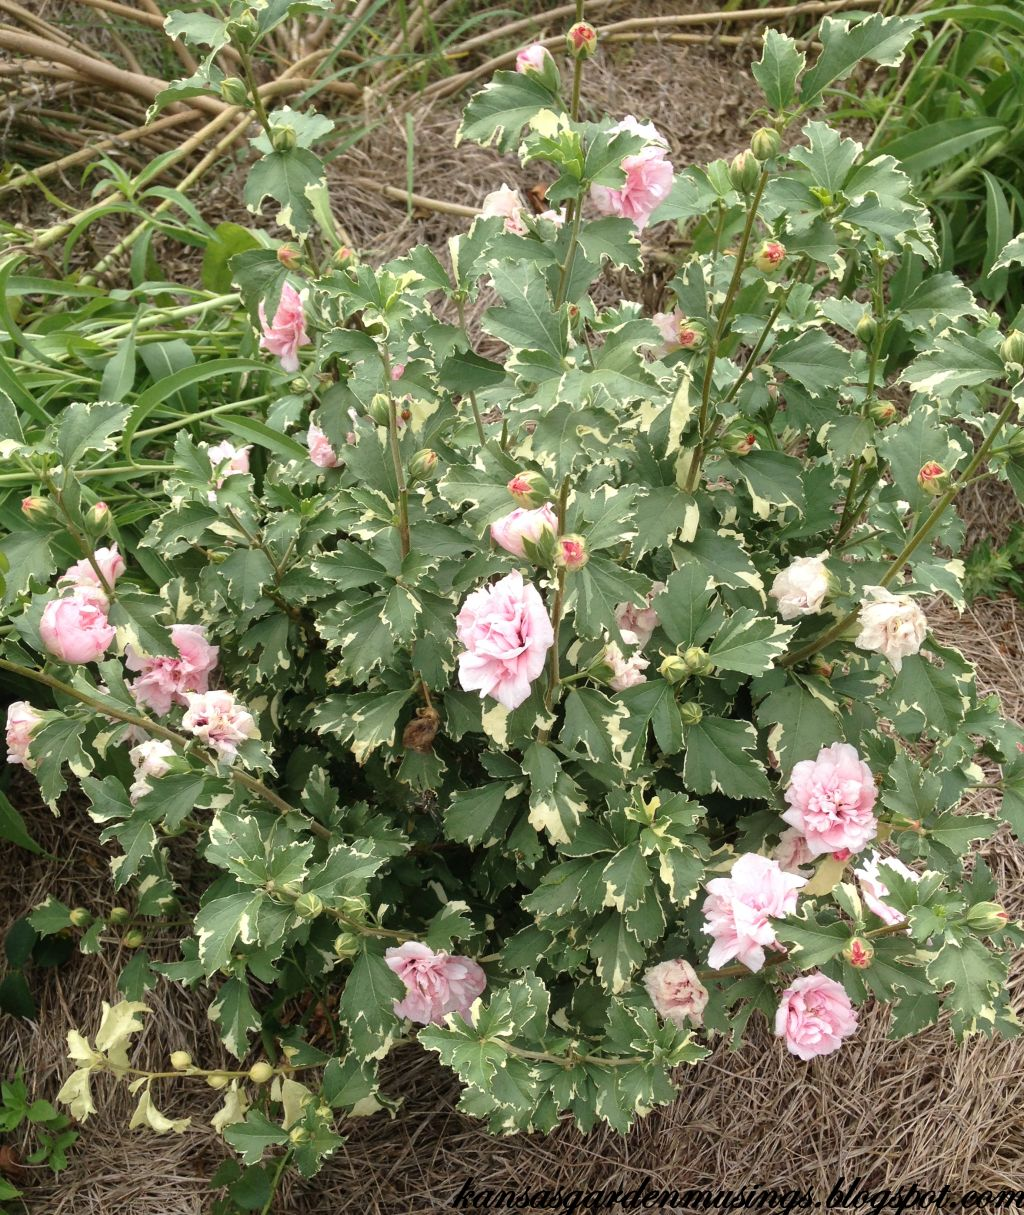 Garden Musings: Sugar Tip Rose (of Sharon)